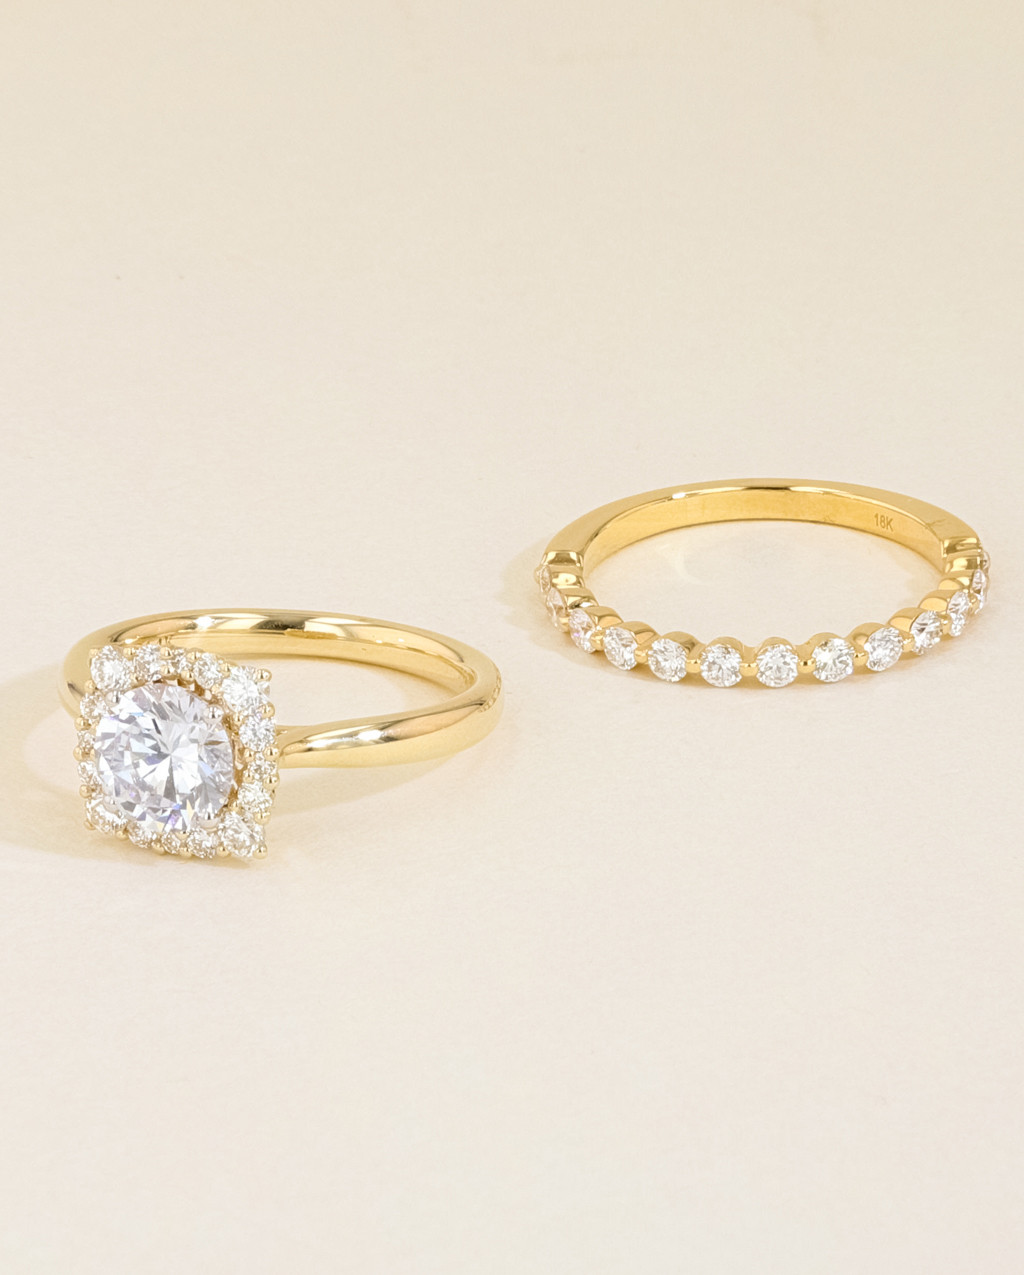 Vintage Diamond Cushion Halo Engagement Ring Set side by side